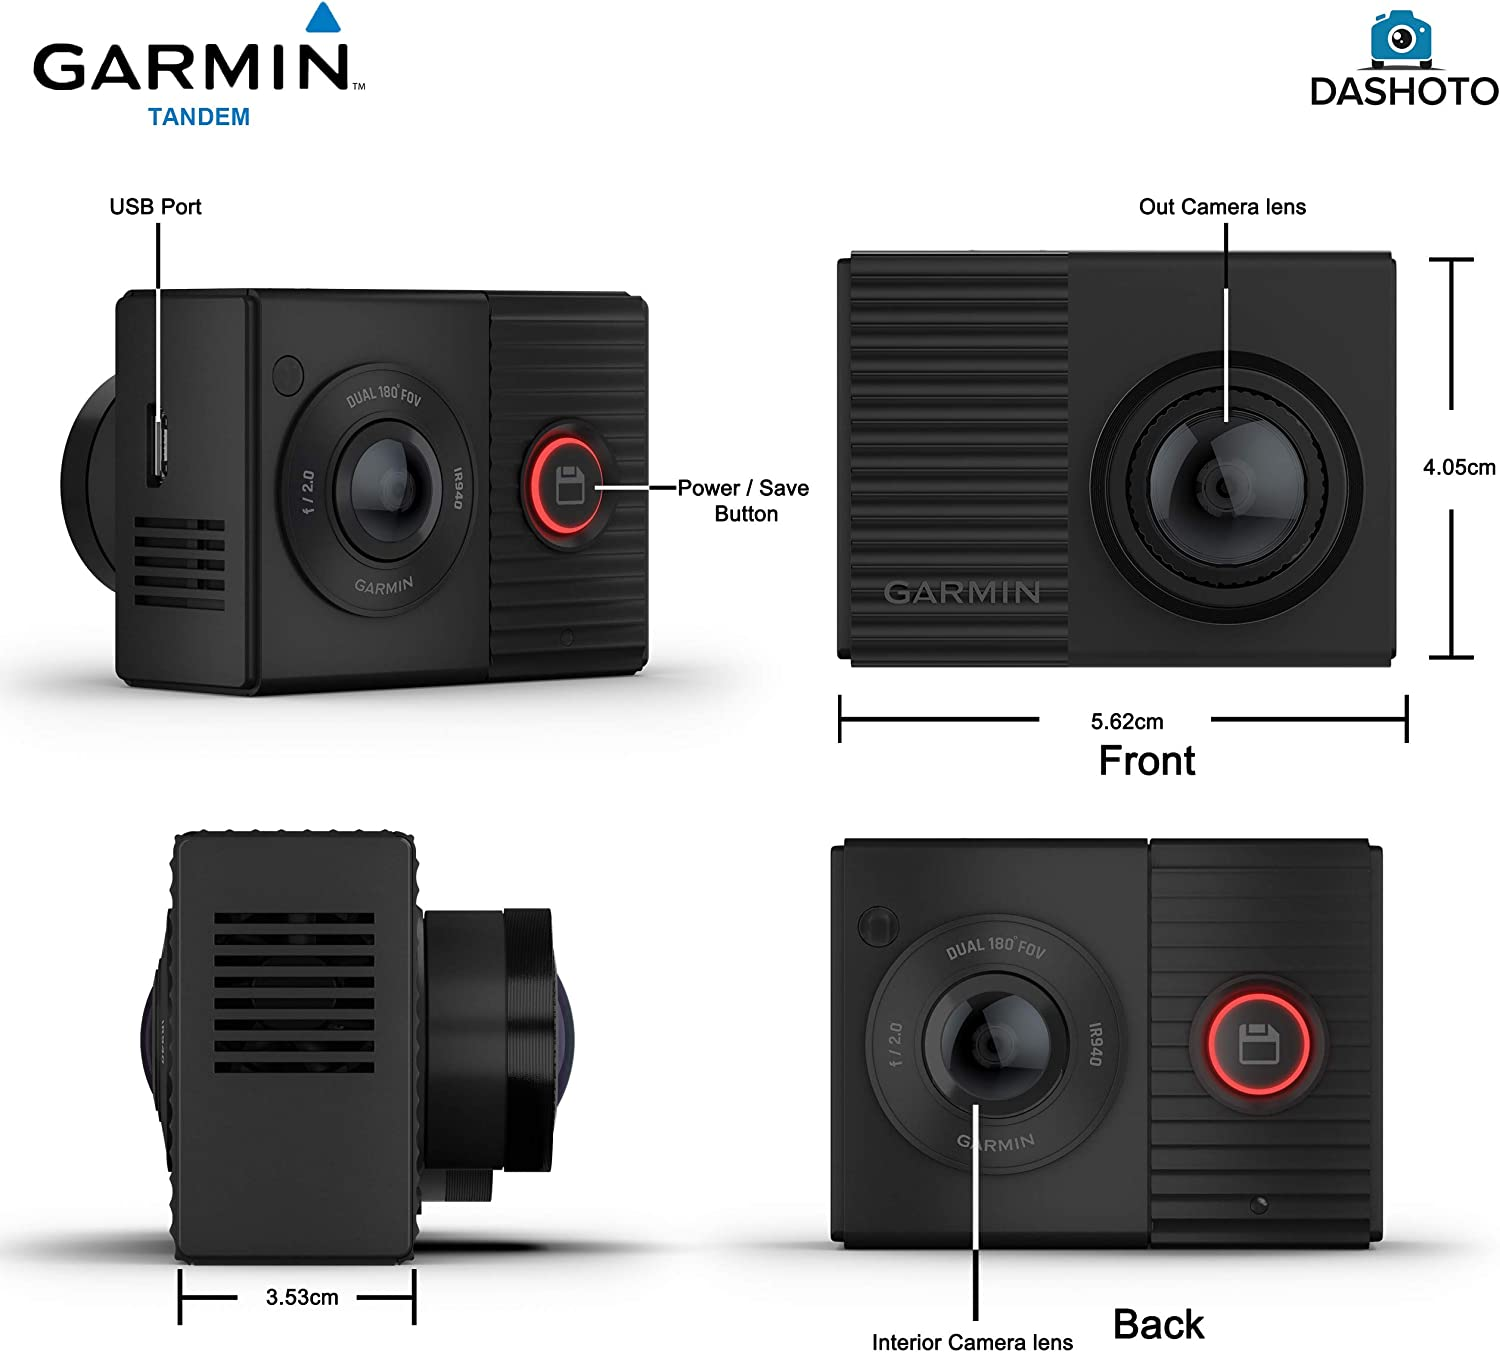 180 Degree Viewing Angle Dual Lens with Interior Night Vision Garmin Tandem Dash Cam Parking Mode Bundle Parking Mode Cable and Installation Kit Included